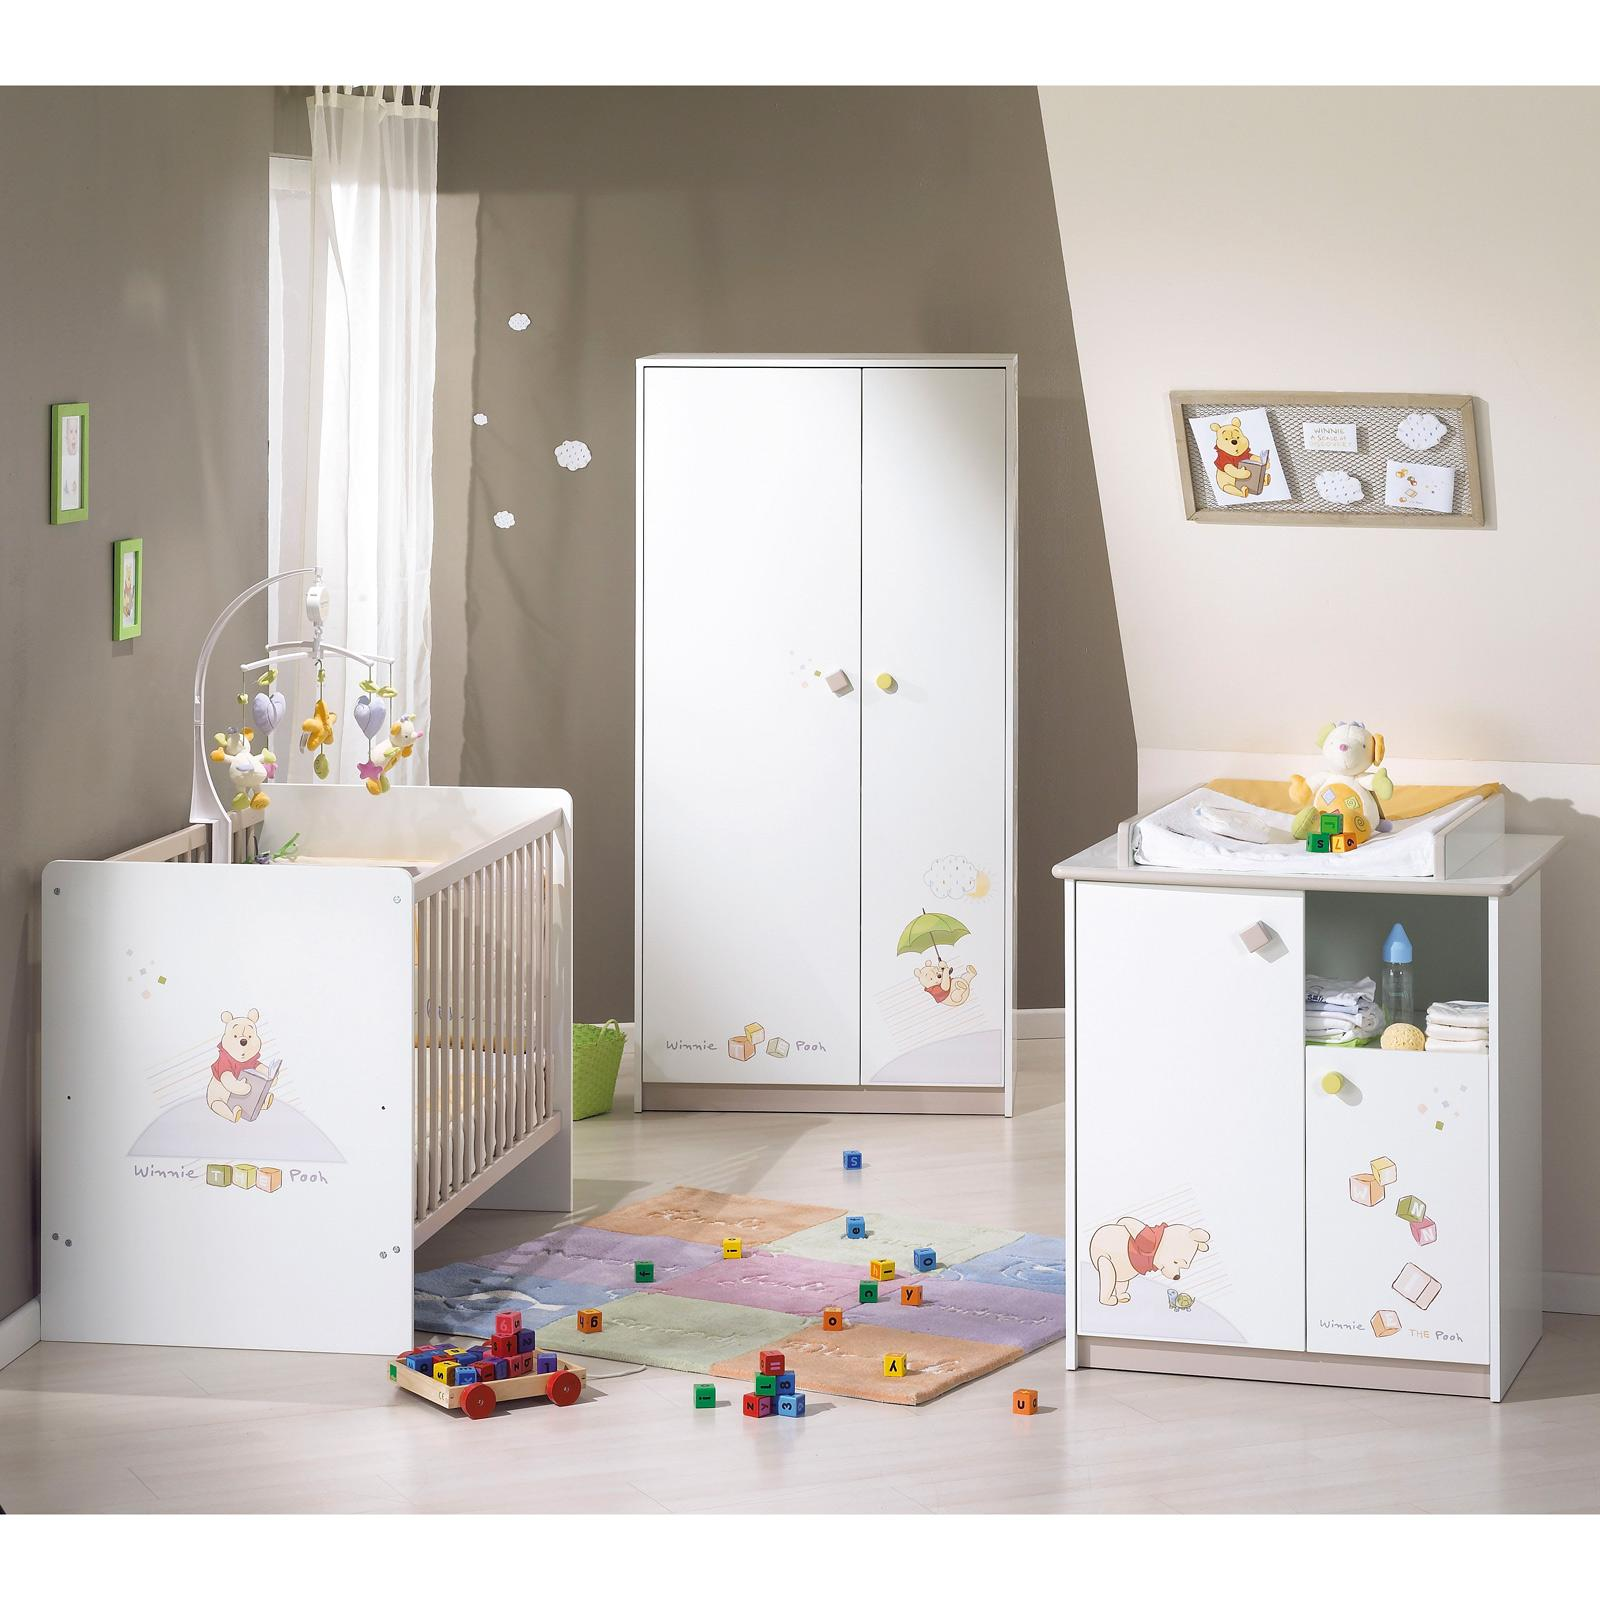 Decoration chambre bebe fille gris et rose for Decoration chambre enfant